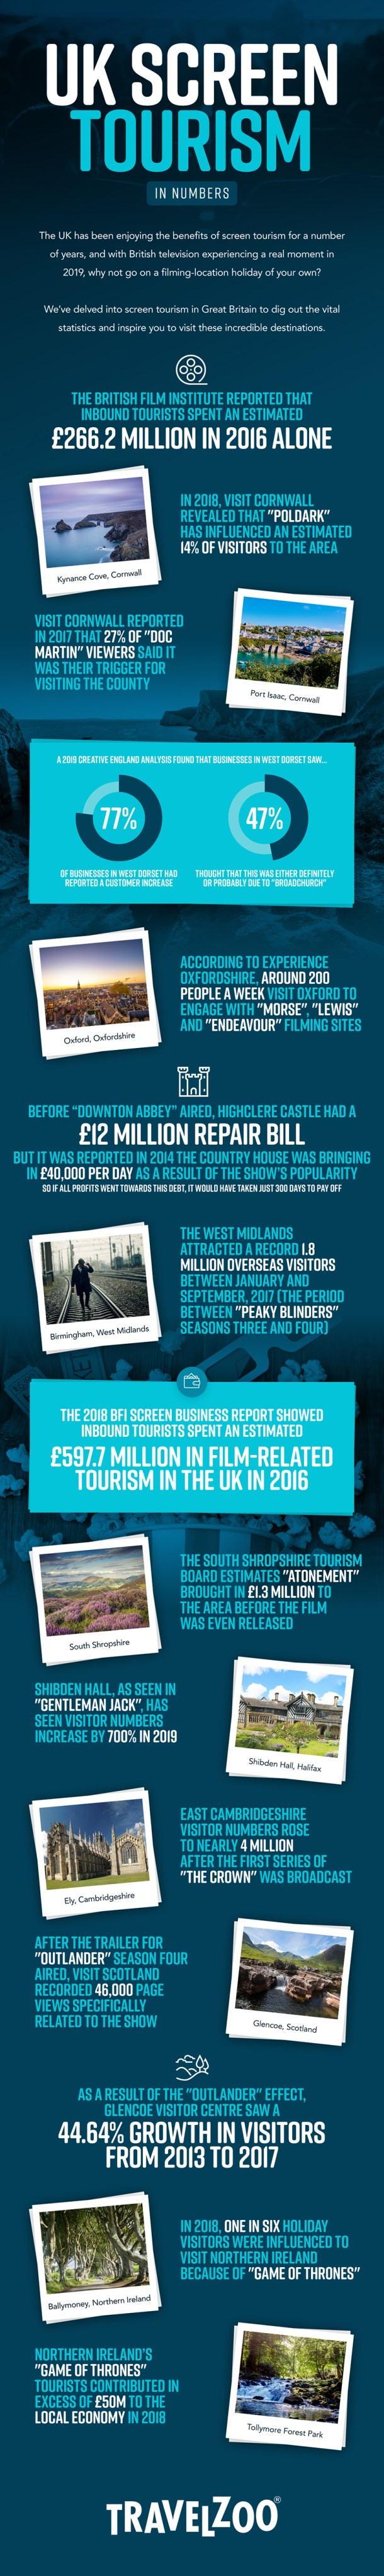 UK screen tourism in numbers